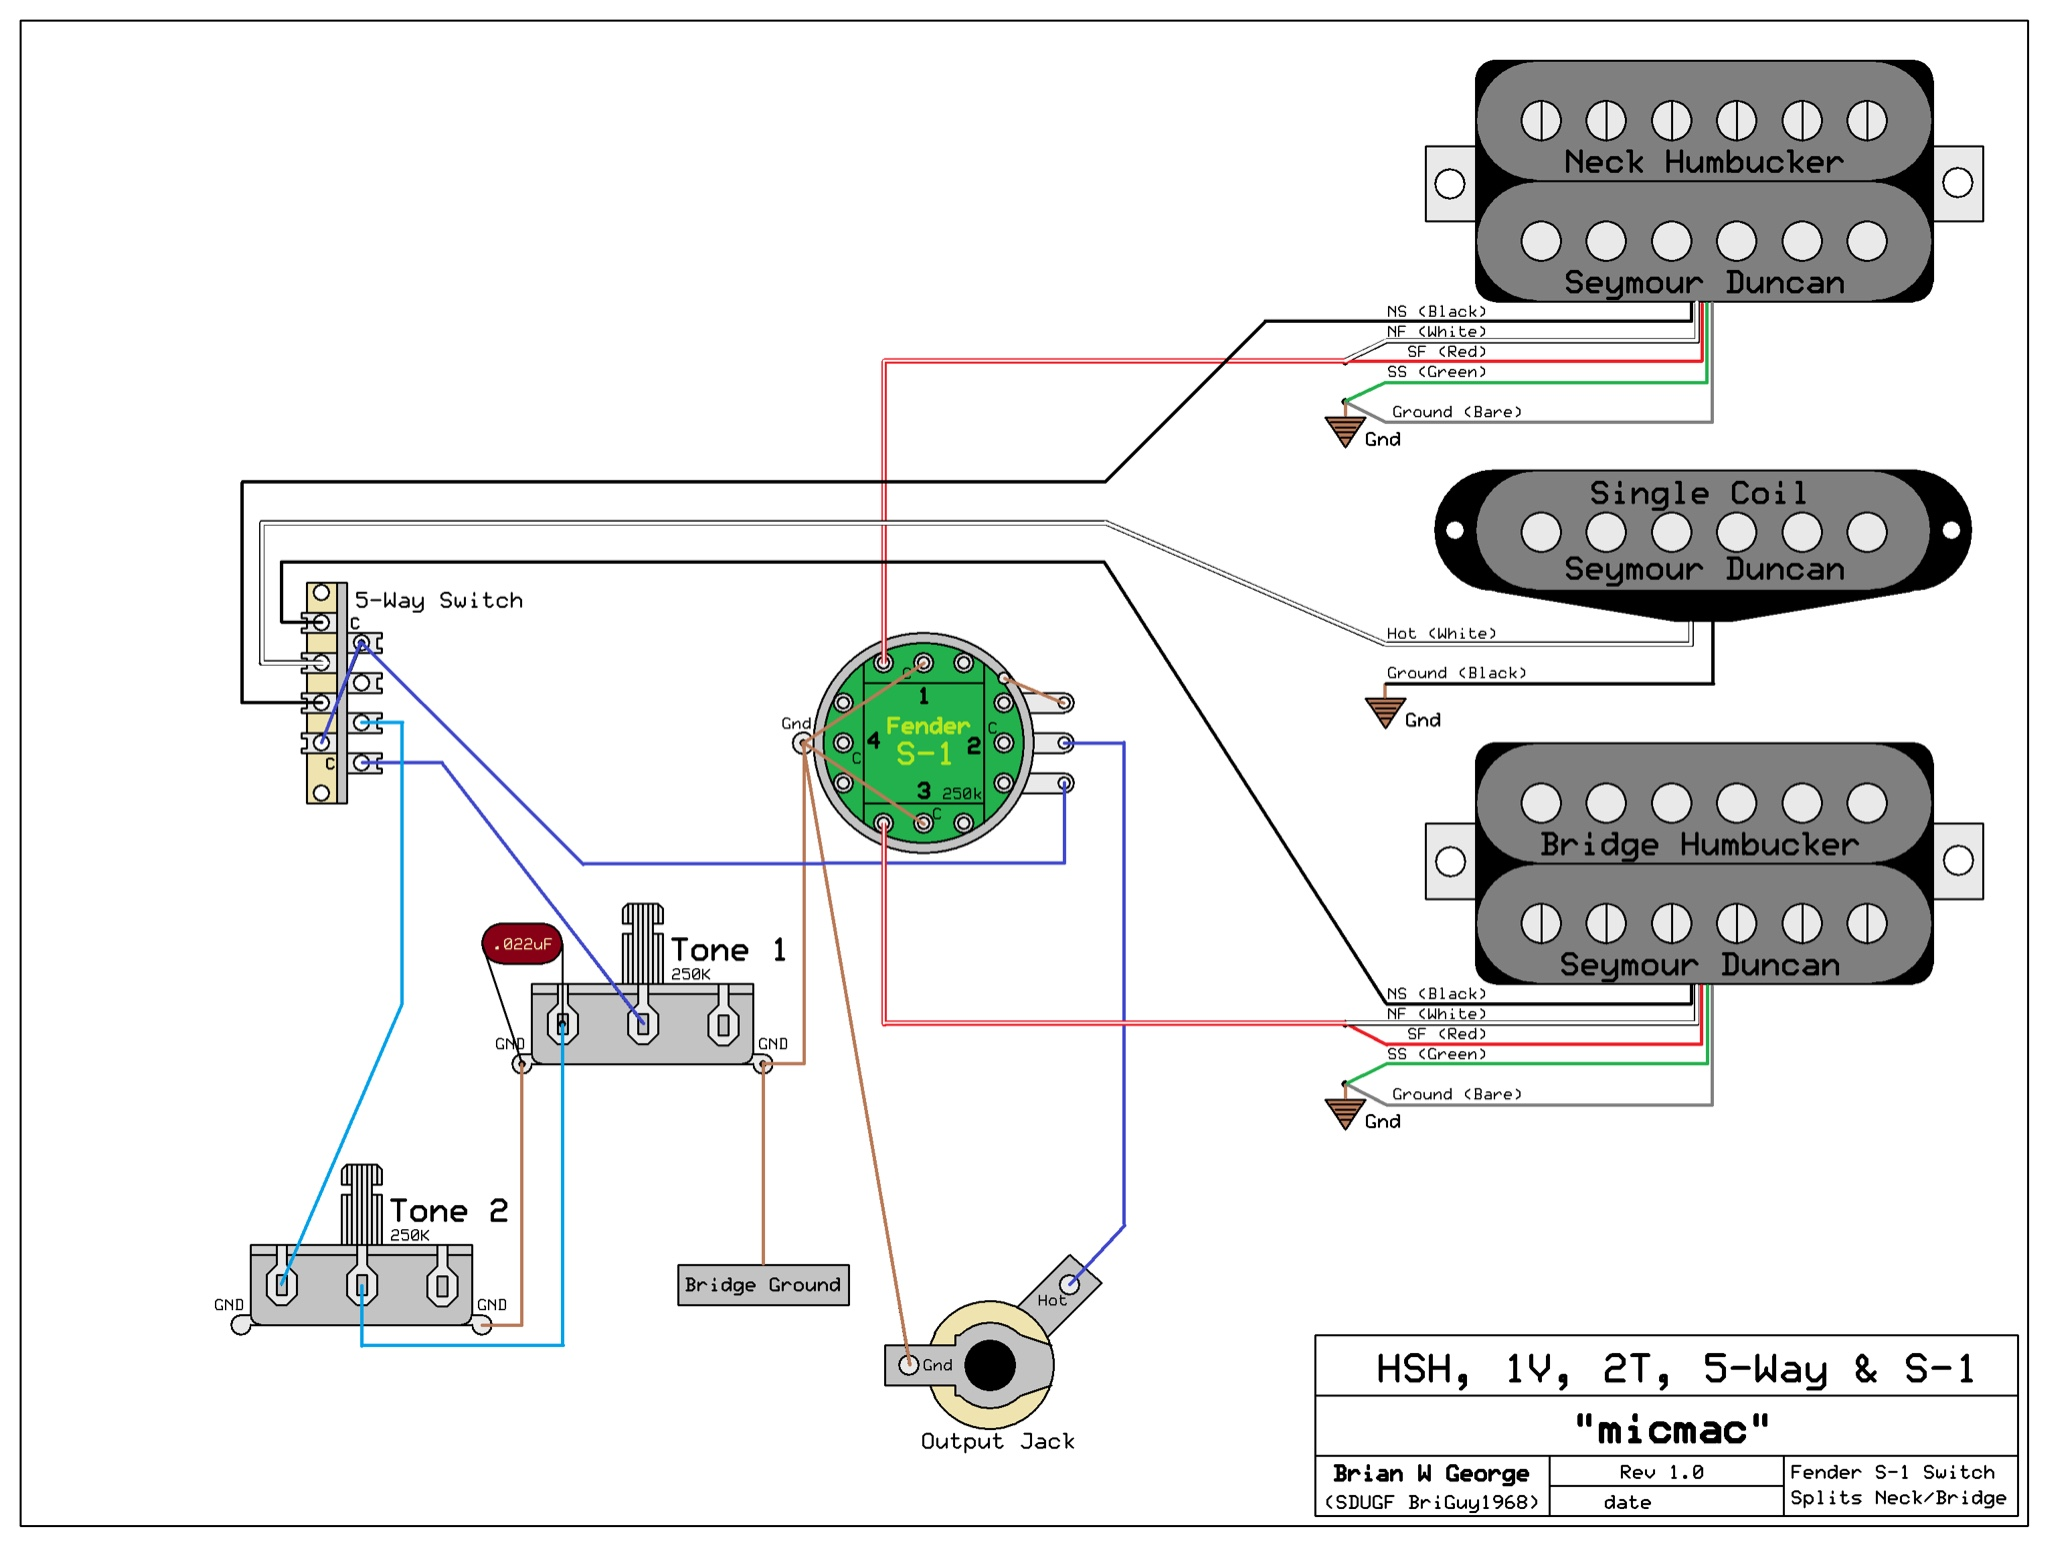 hss strat wiring diagram 1 volume tone need for an hsh 2 s switch